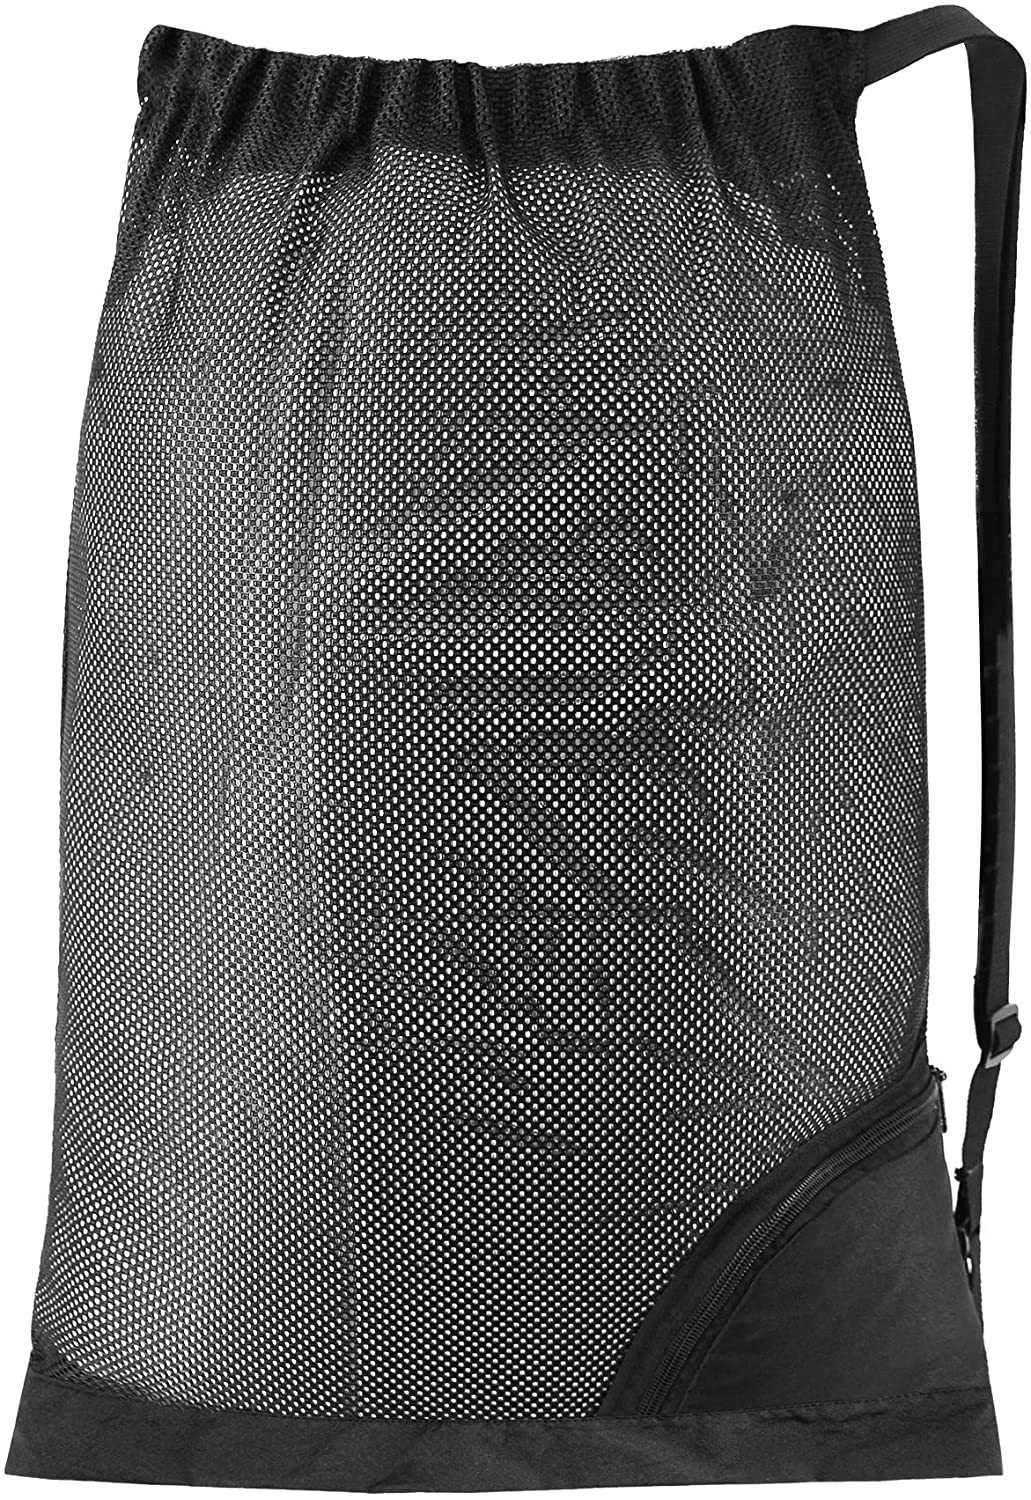 Mesh Drawstring Sling Bag 1 Pcs Durable Lightweight Net String Sports Gym Equipment Backpack Nylon Washable Large Swimming Pool